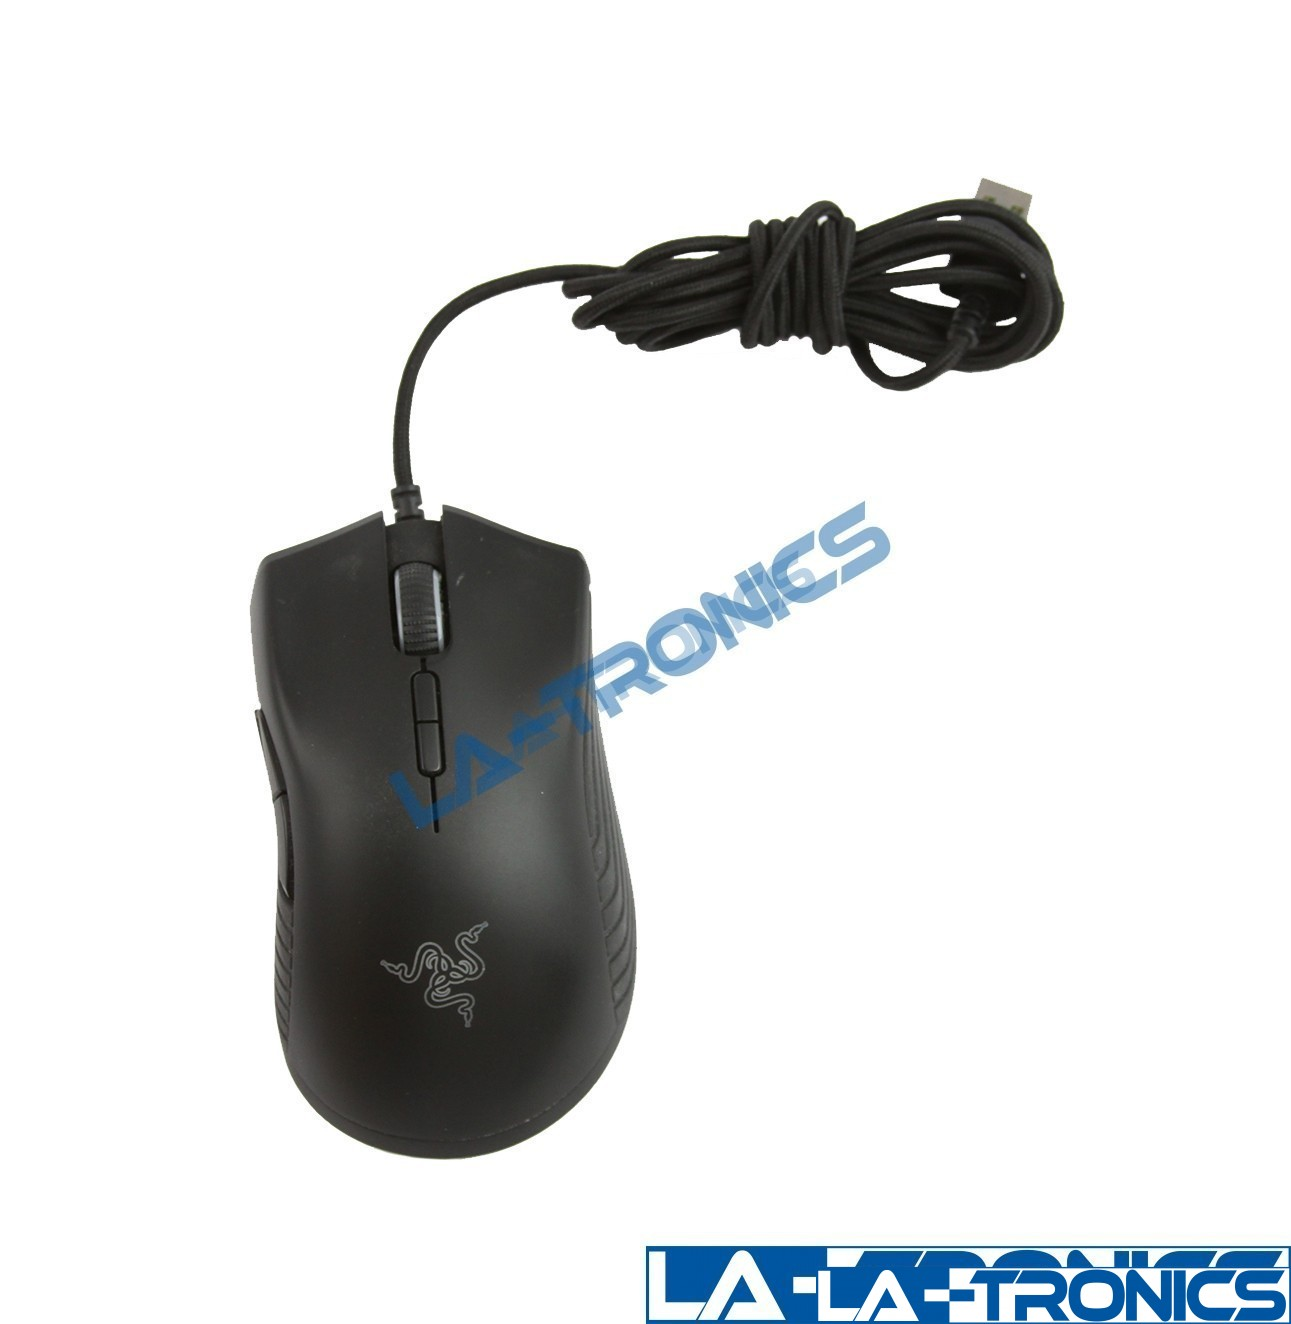 Razer Mamba RC30 Wireless/Wired USB Gaming Mouse - Black